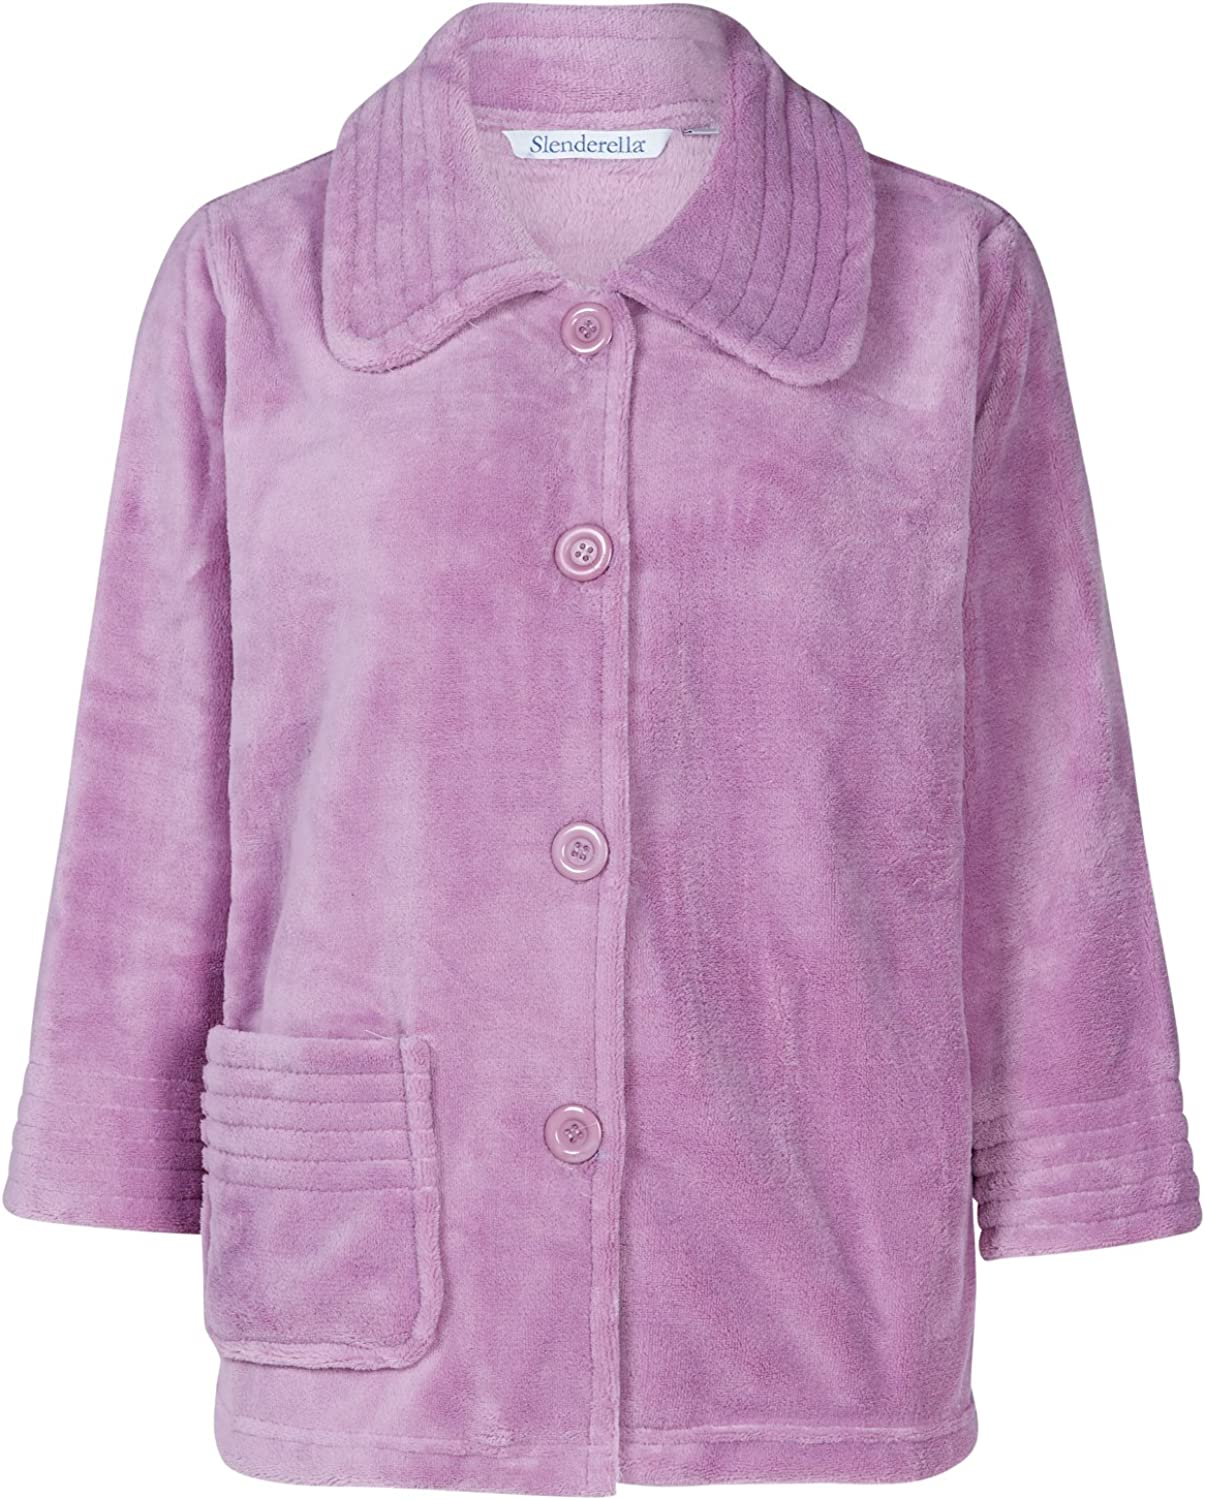 Small - XXL Slenderella Womens Button Up Soft Fleece Bed Jacket Housecoat with Pocket